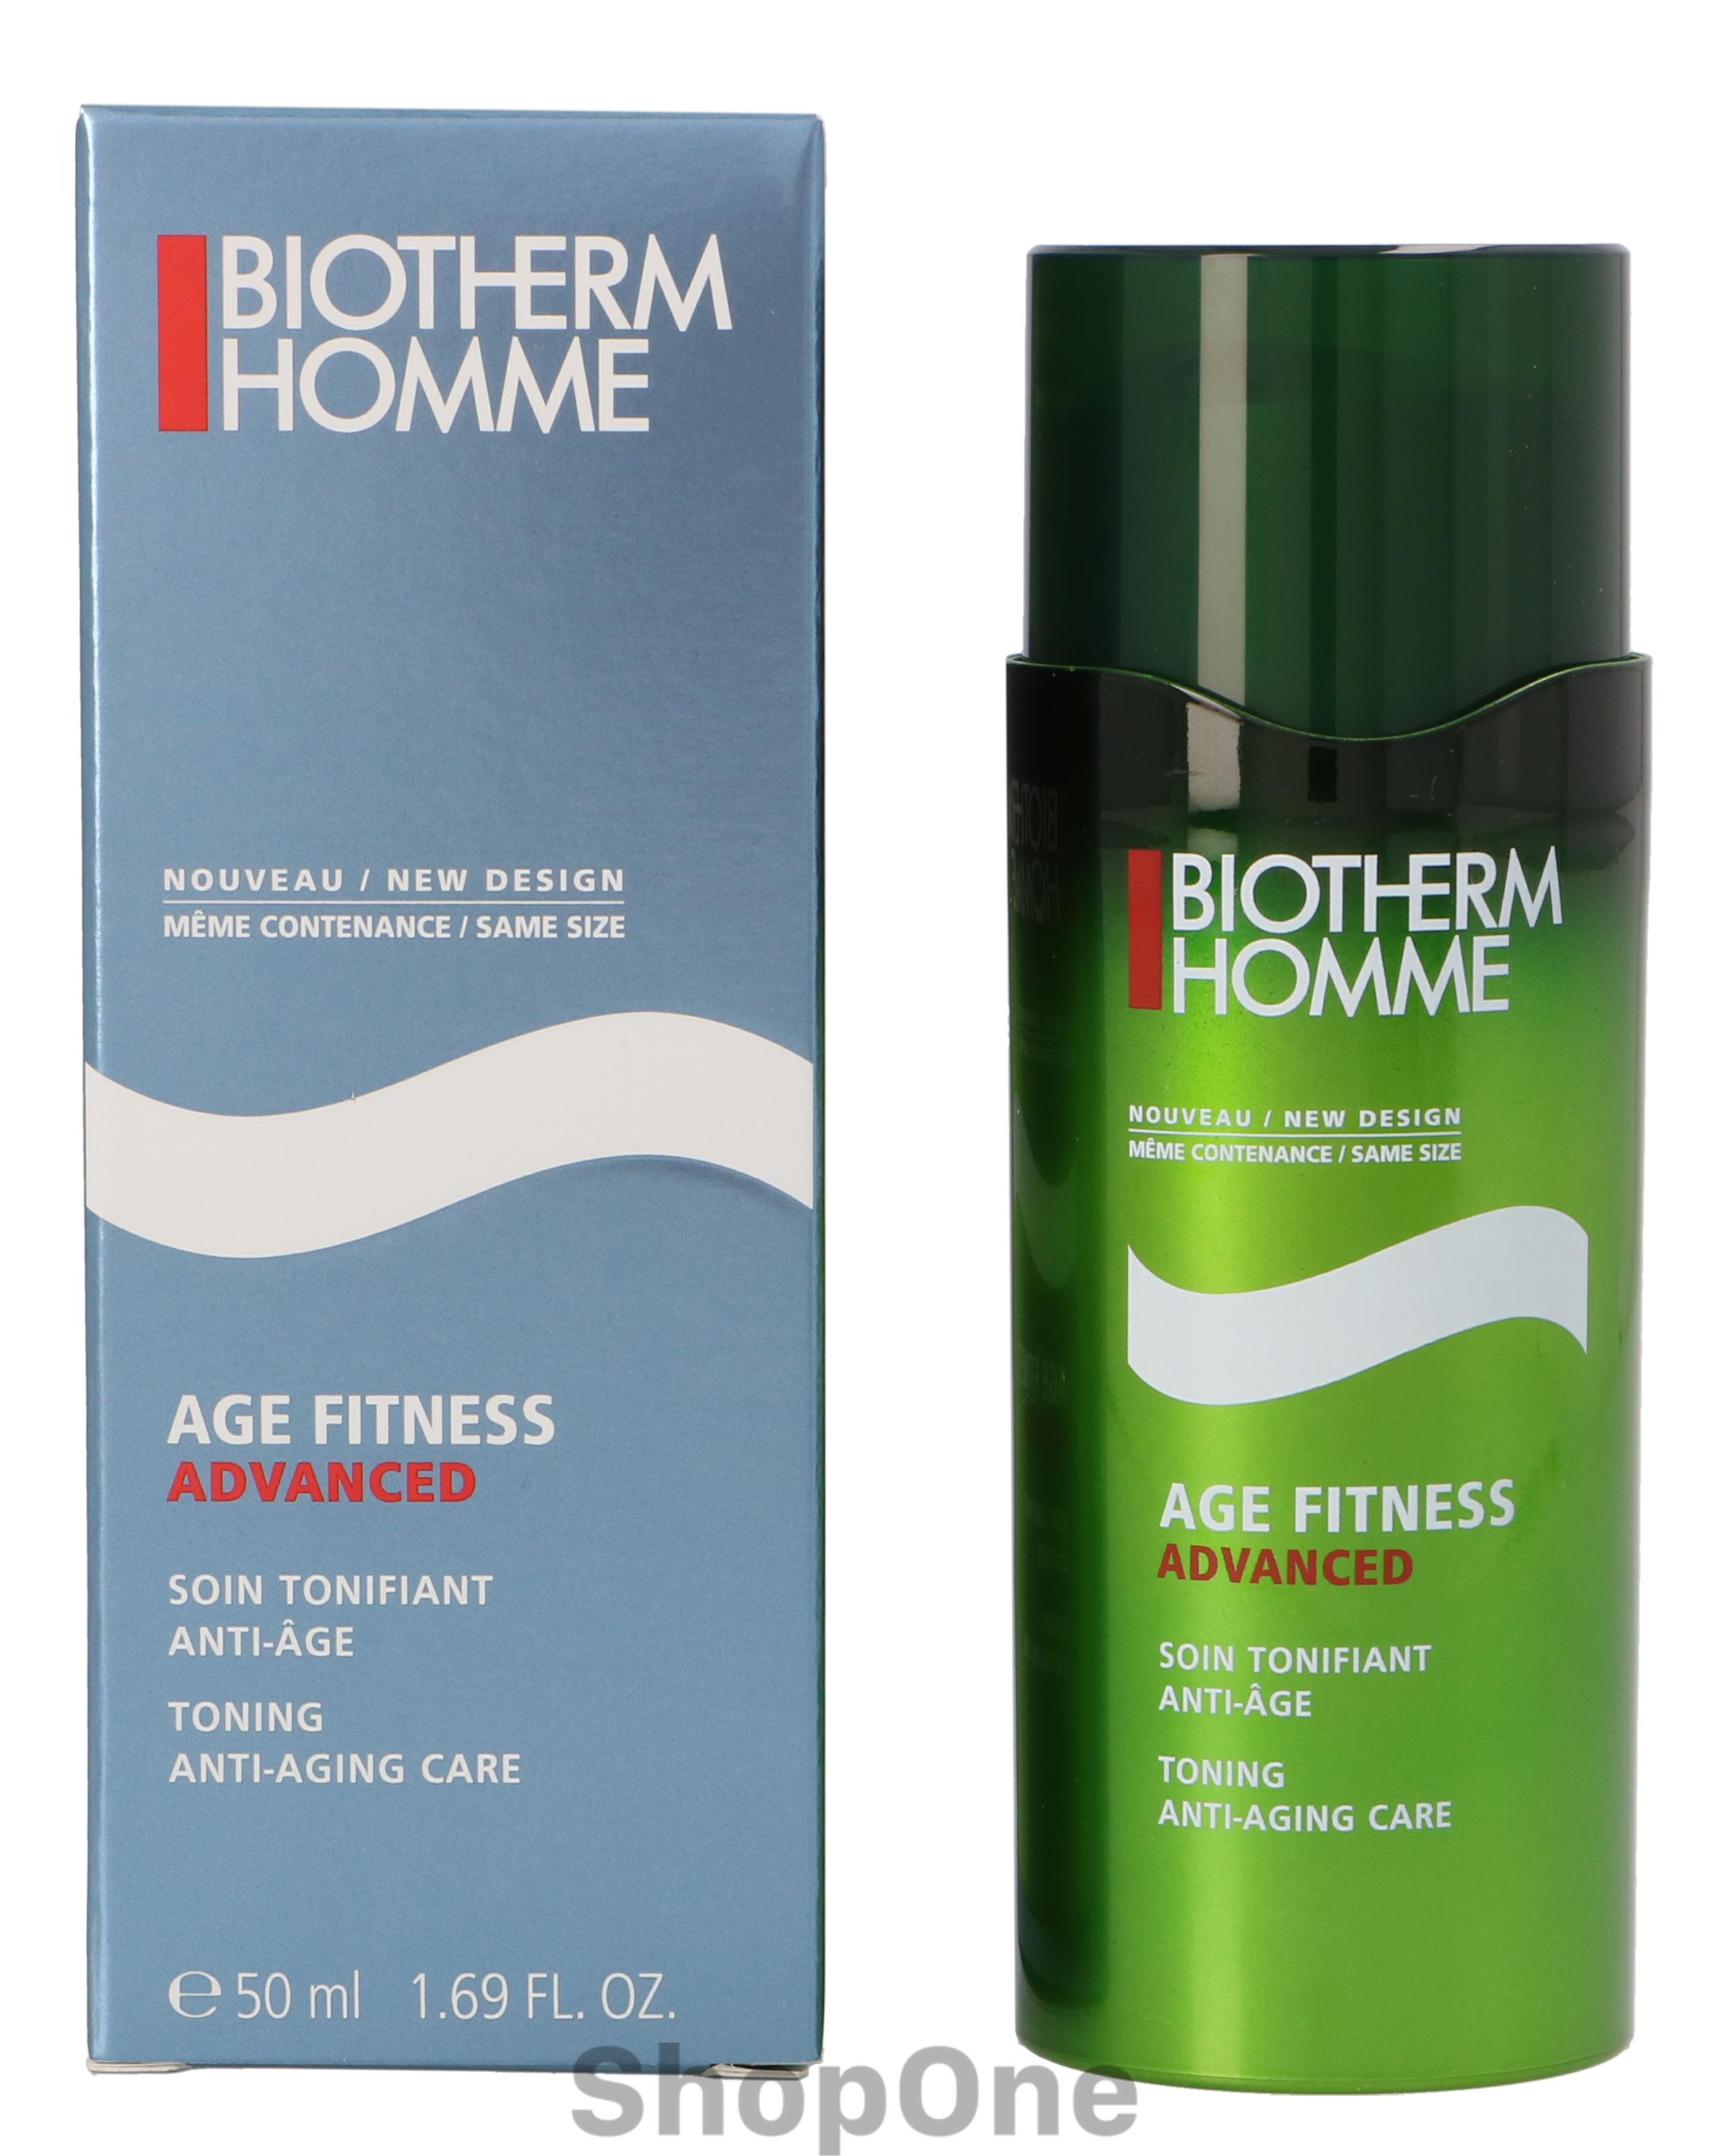 Homme Age Fitness Advanced 50 ml fra Biotherm - Gezicht Biotherm Homme Age Fitness Advanced 50 ml. Fra Biotherm.